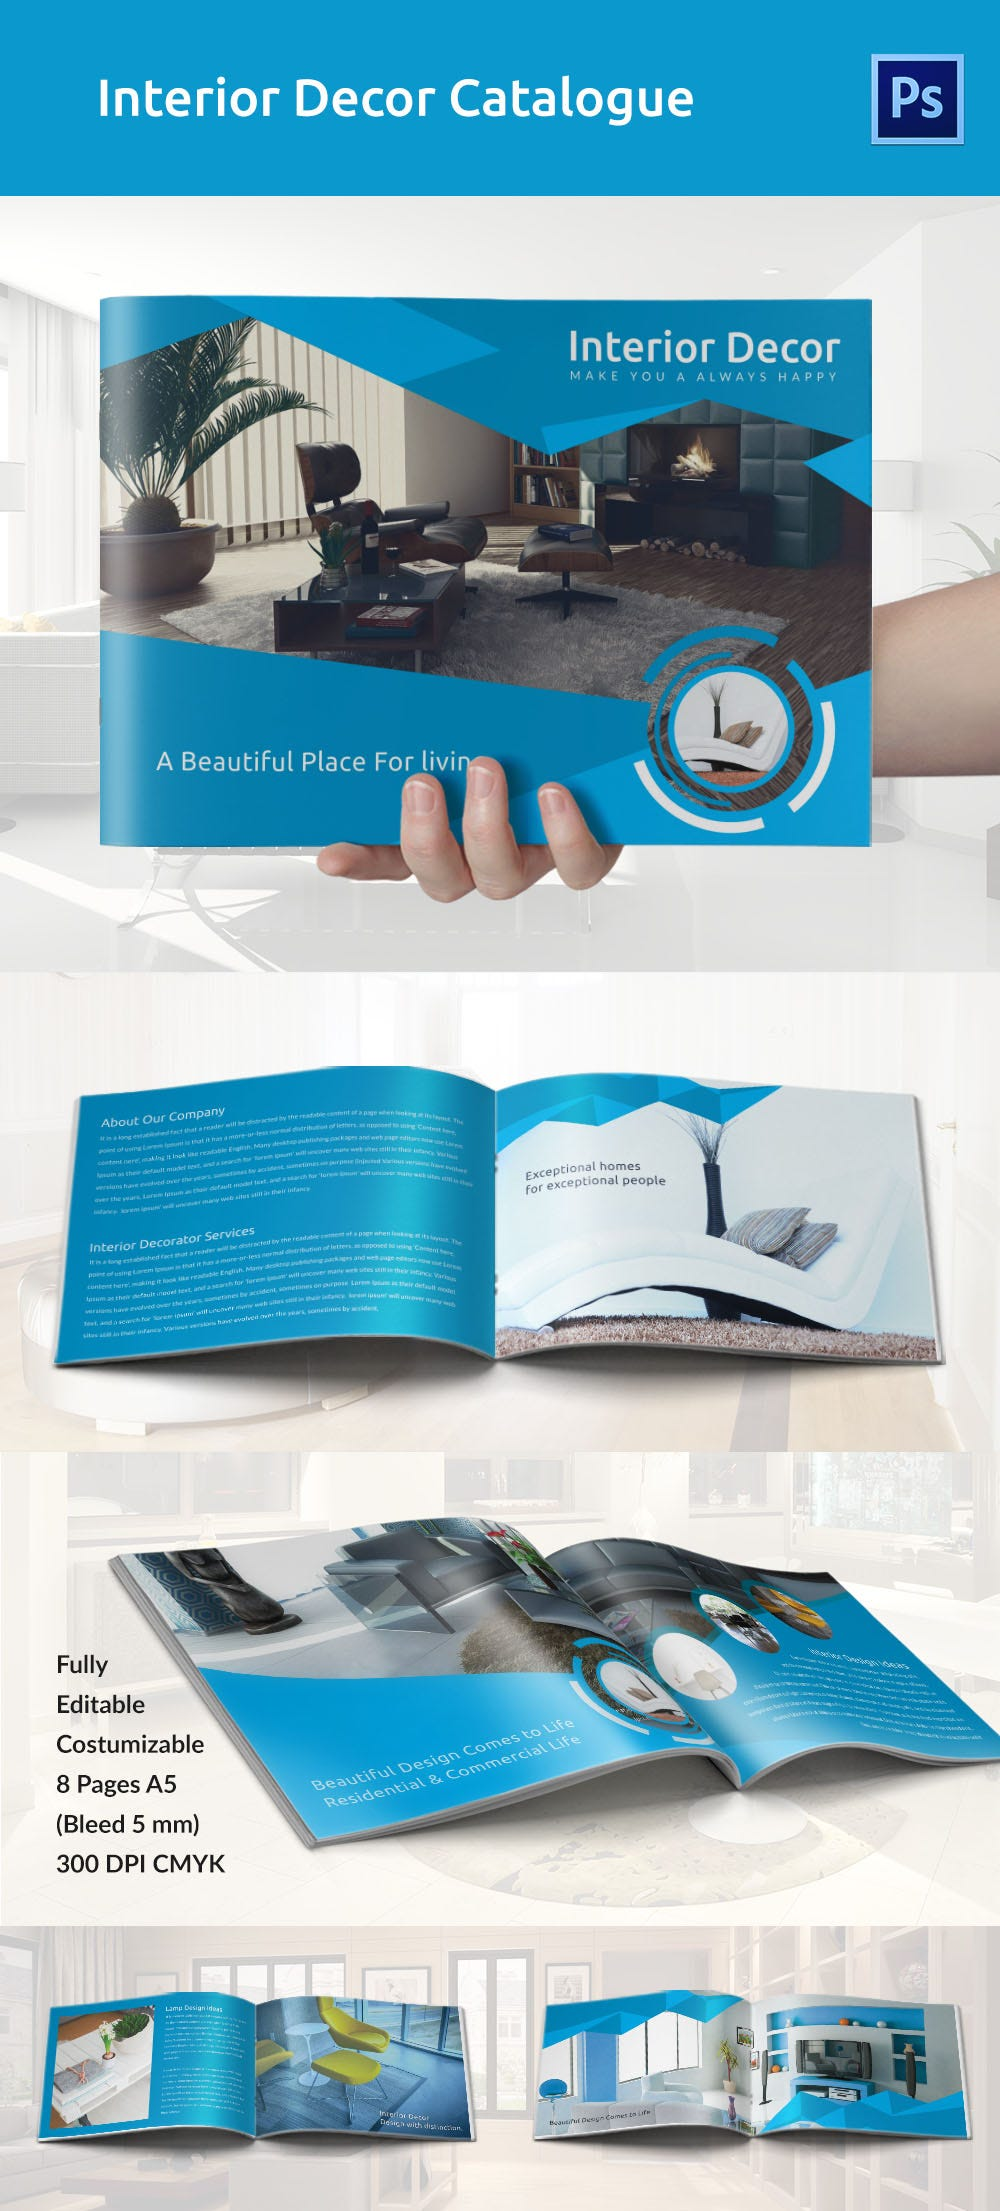 17 interior decoration brochure free word psd pdf eps indesign format download free. Black Bedroom Furniture Sets. Home Design Ideas